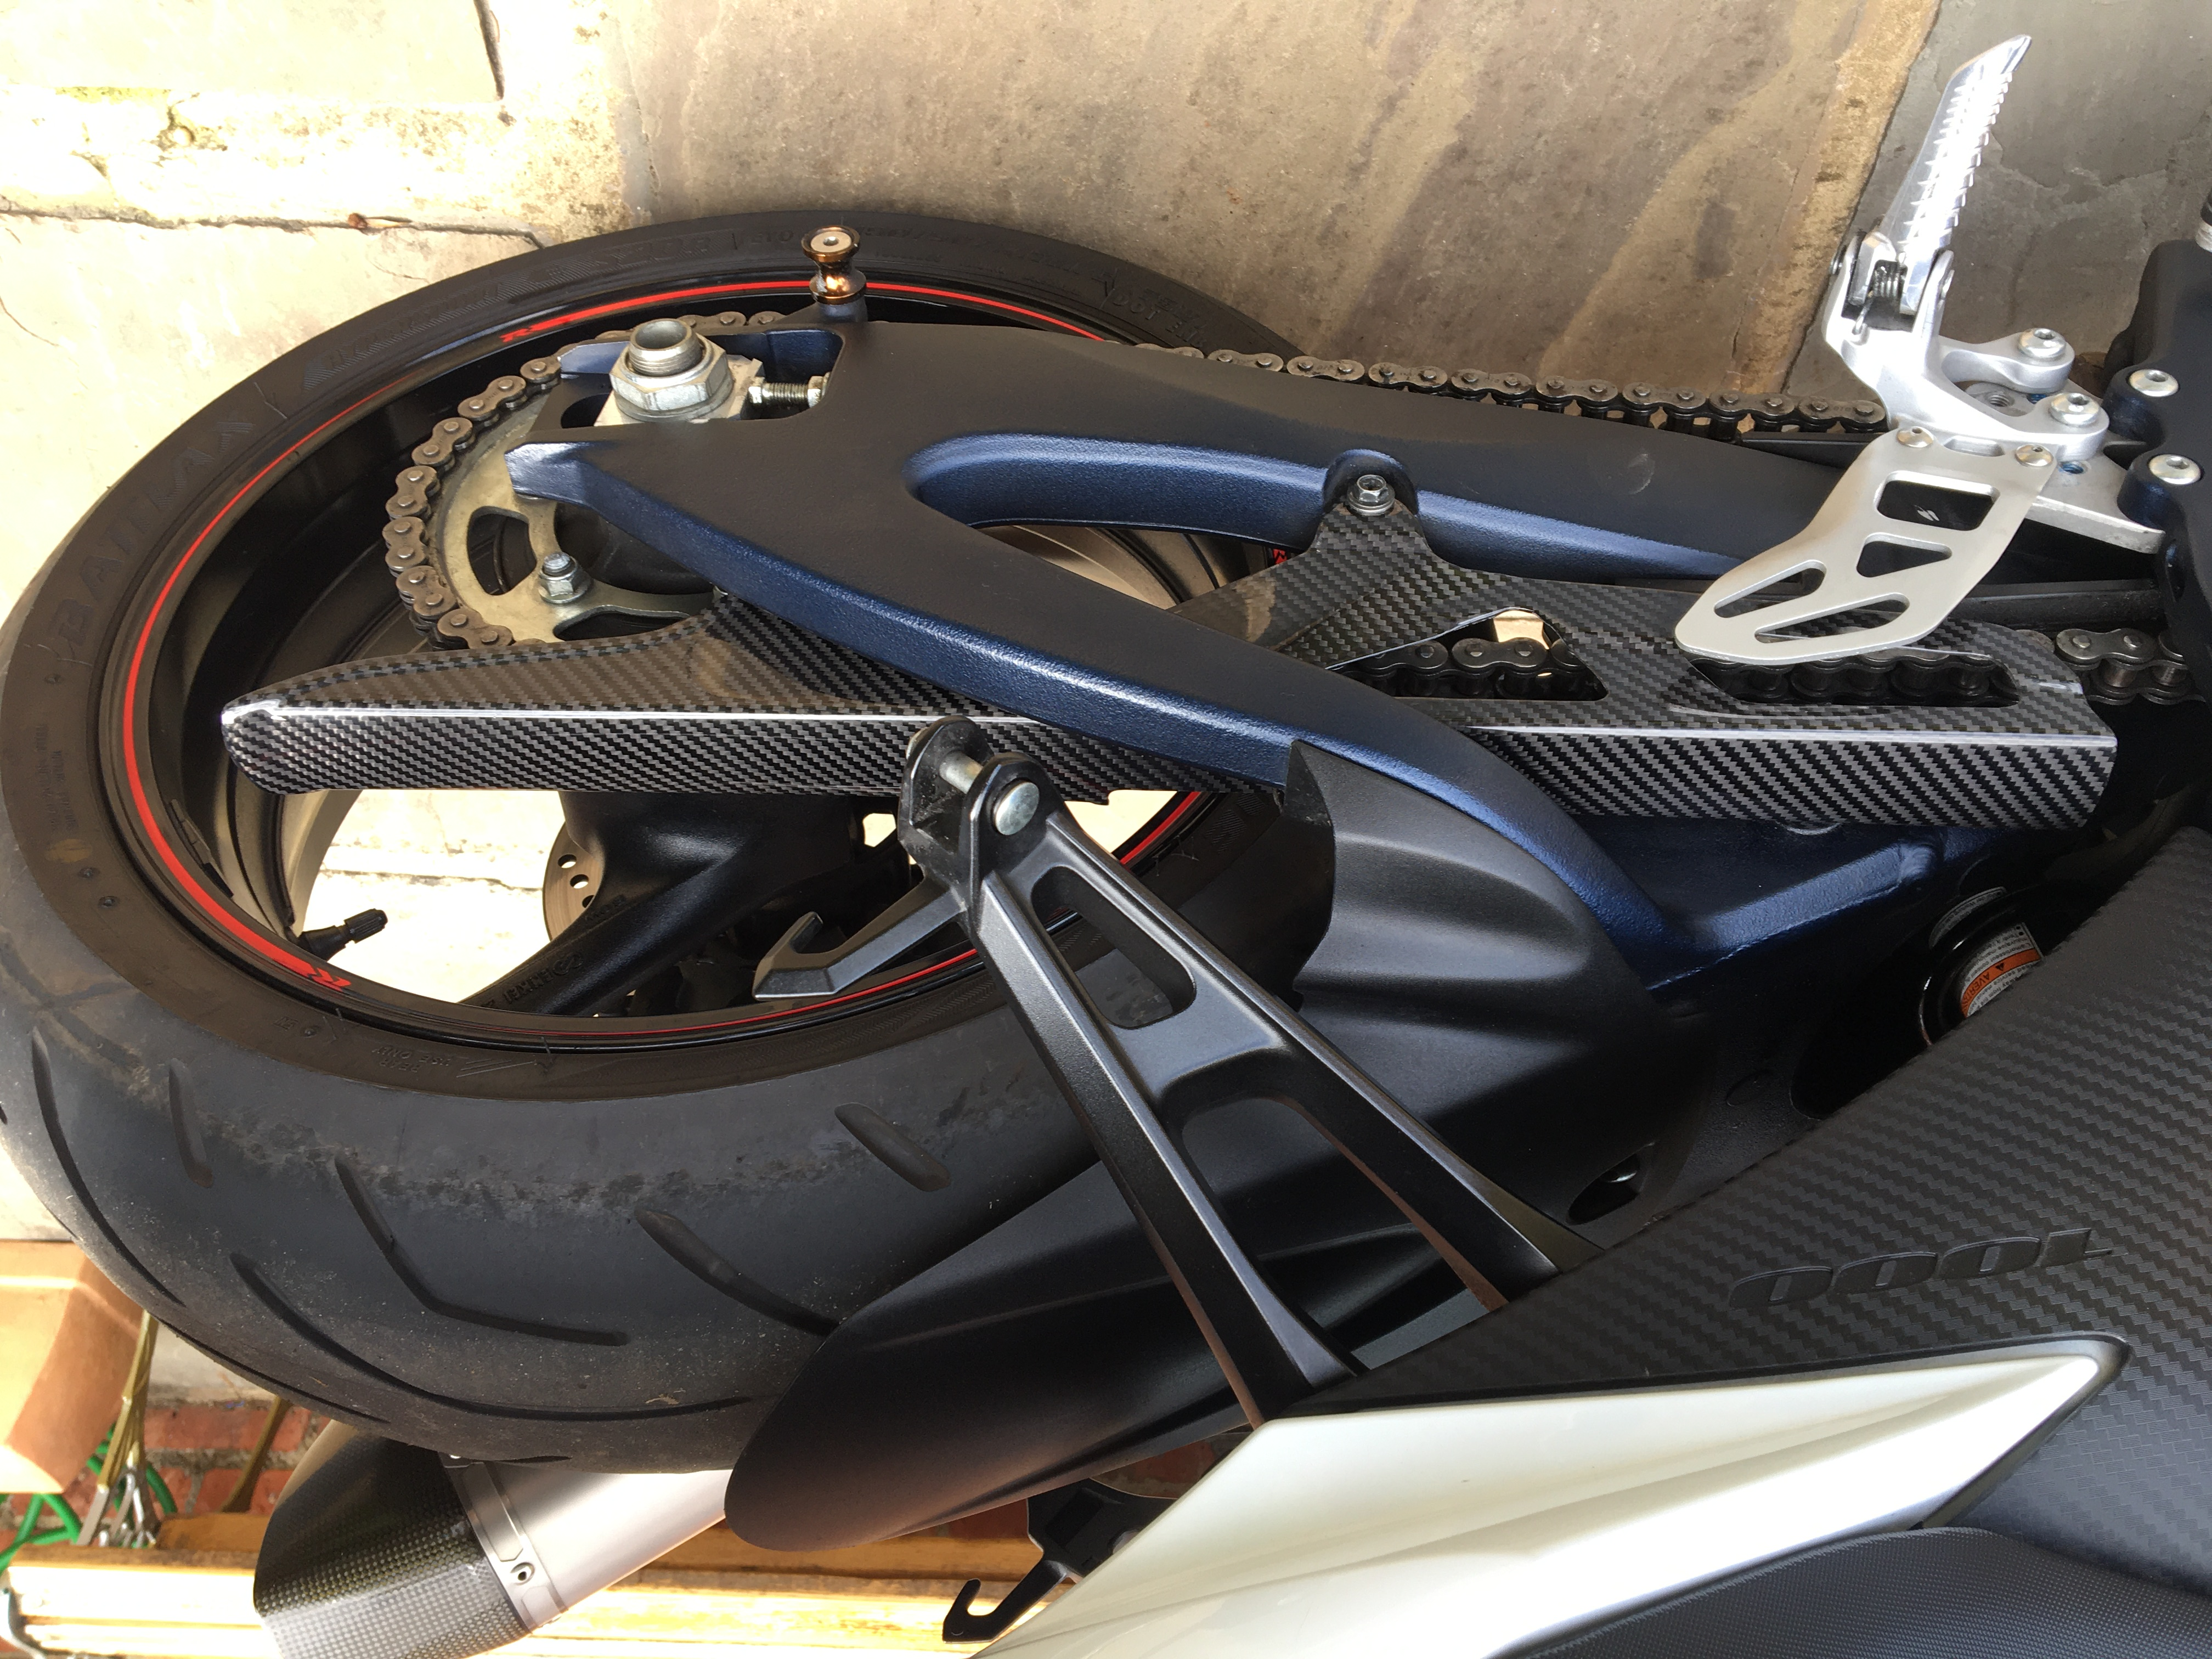 suzuki-gsxr-1000-carbon-fibre-chain-guard.jpg